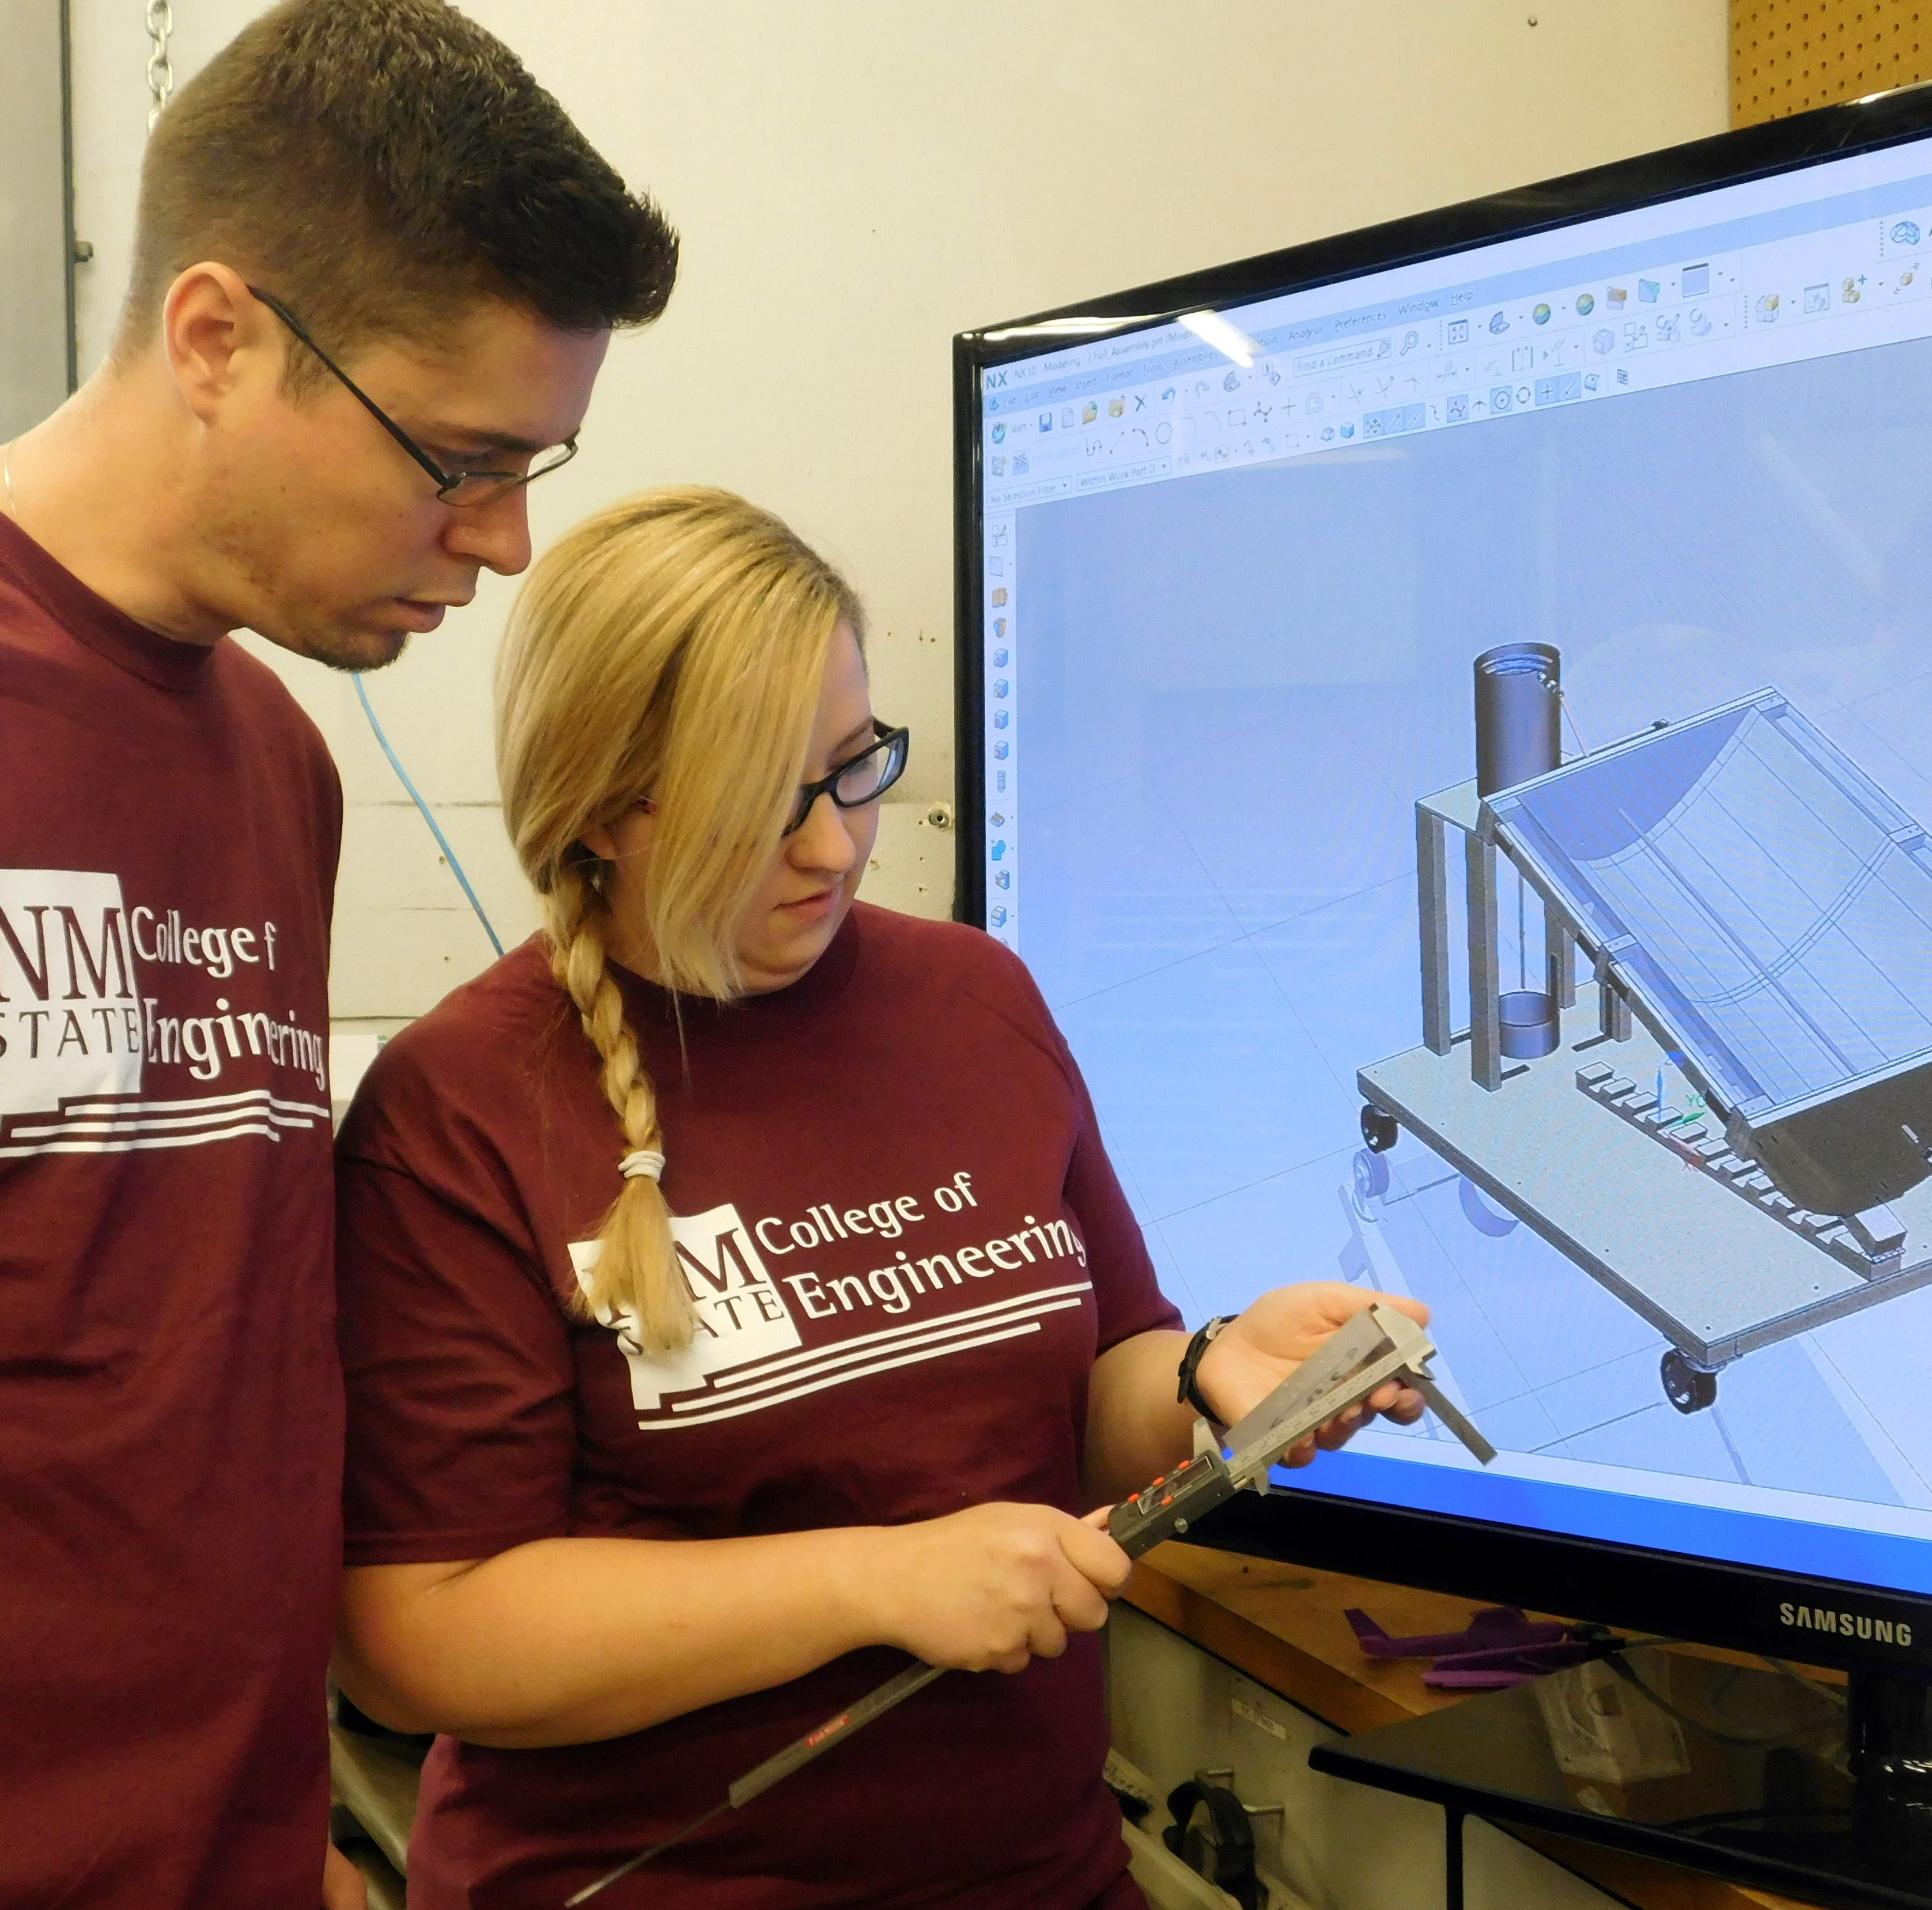 Planned NMSU engineering center to focus on advanced manufacturing